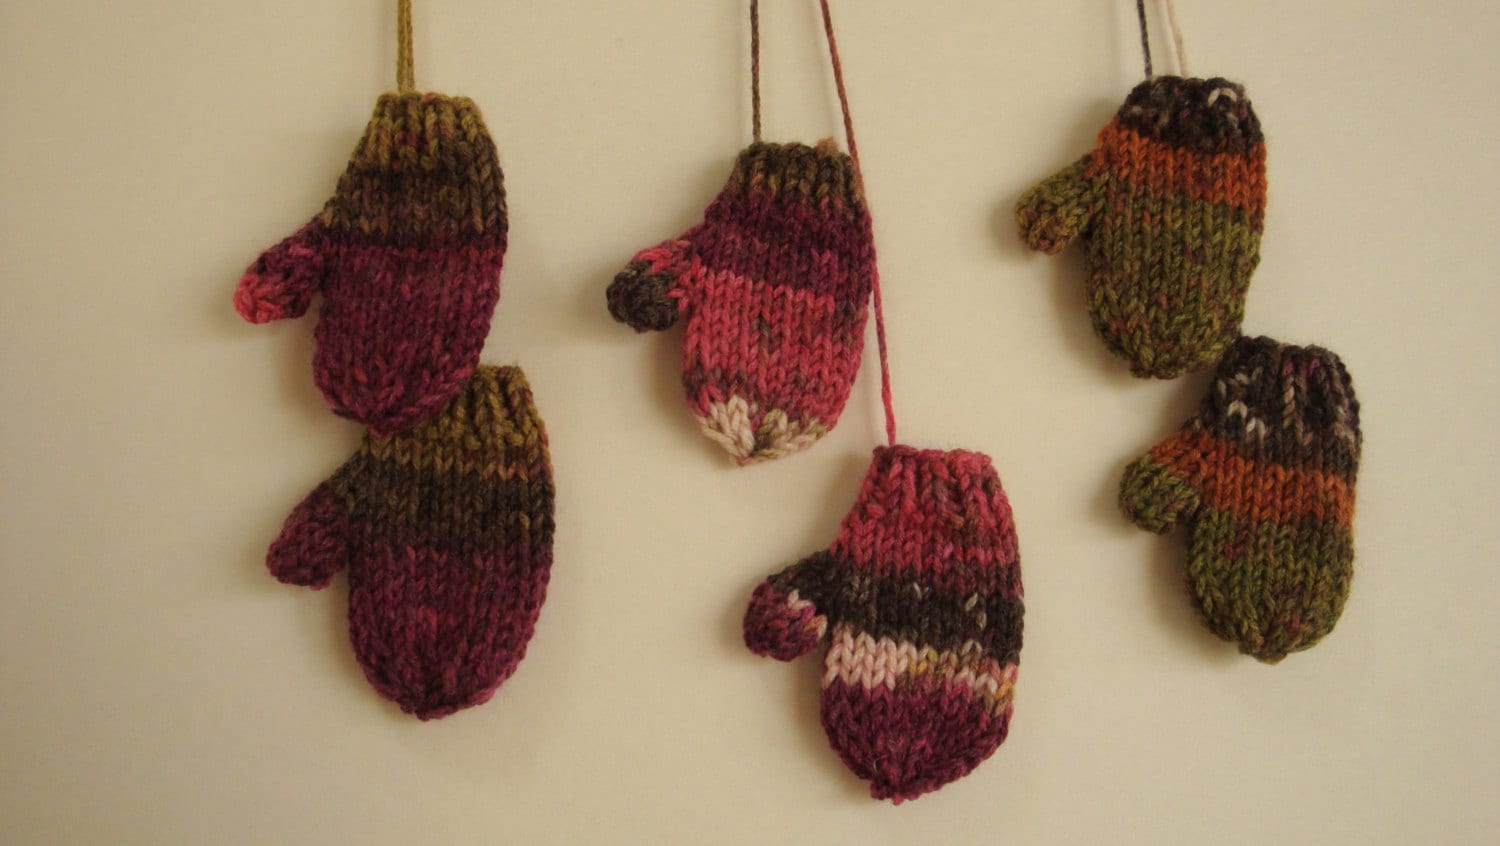 Handmade Knit Miniature Mitten Ornaments or Package Toppers